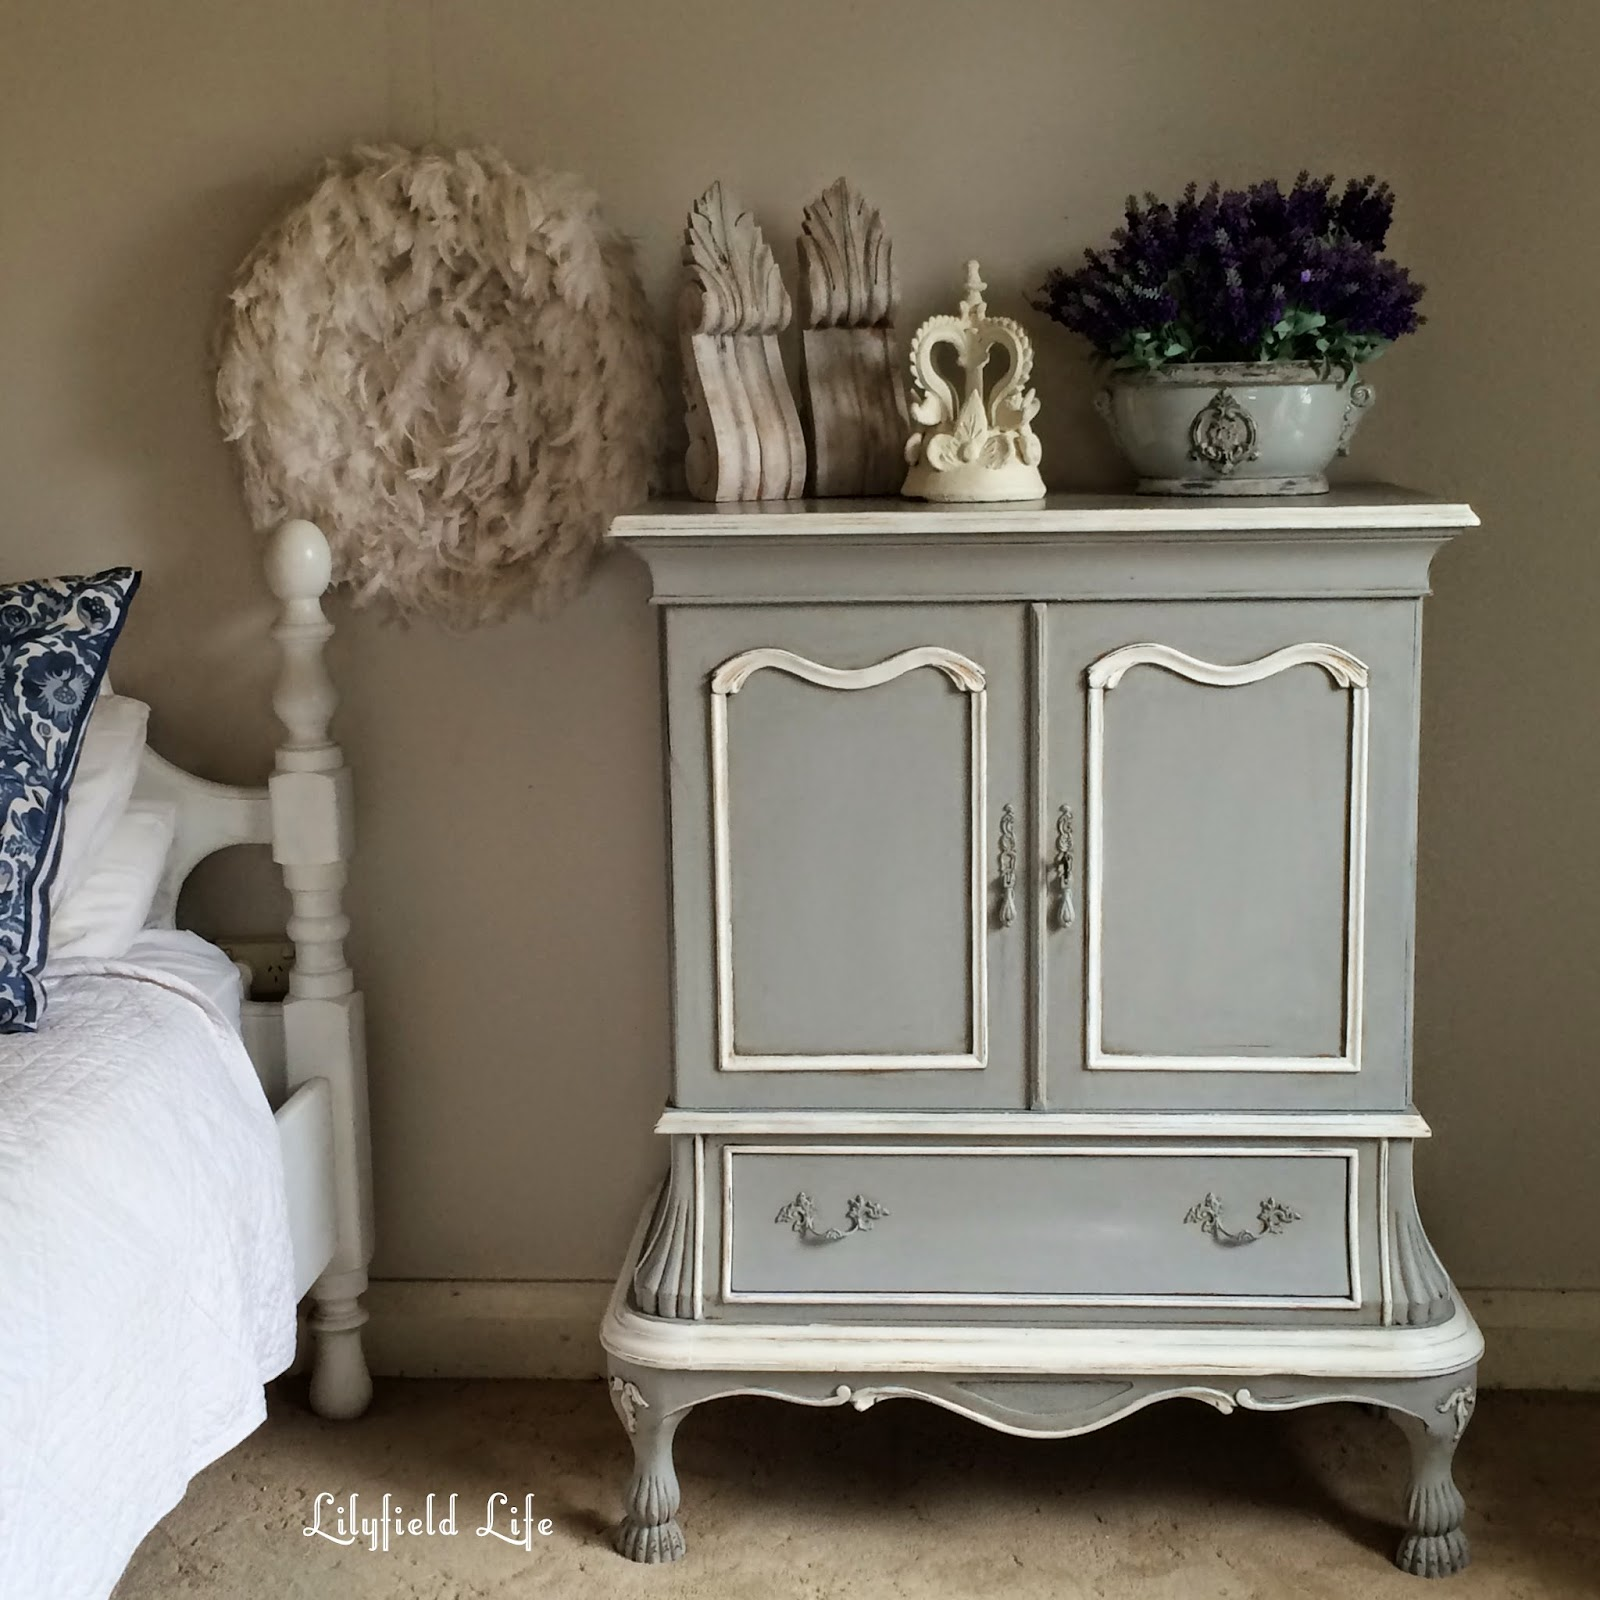 painted Tv cabinet French provincial style by Lilyfield Life